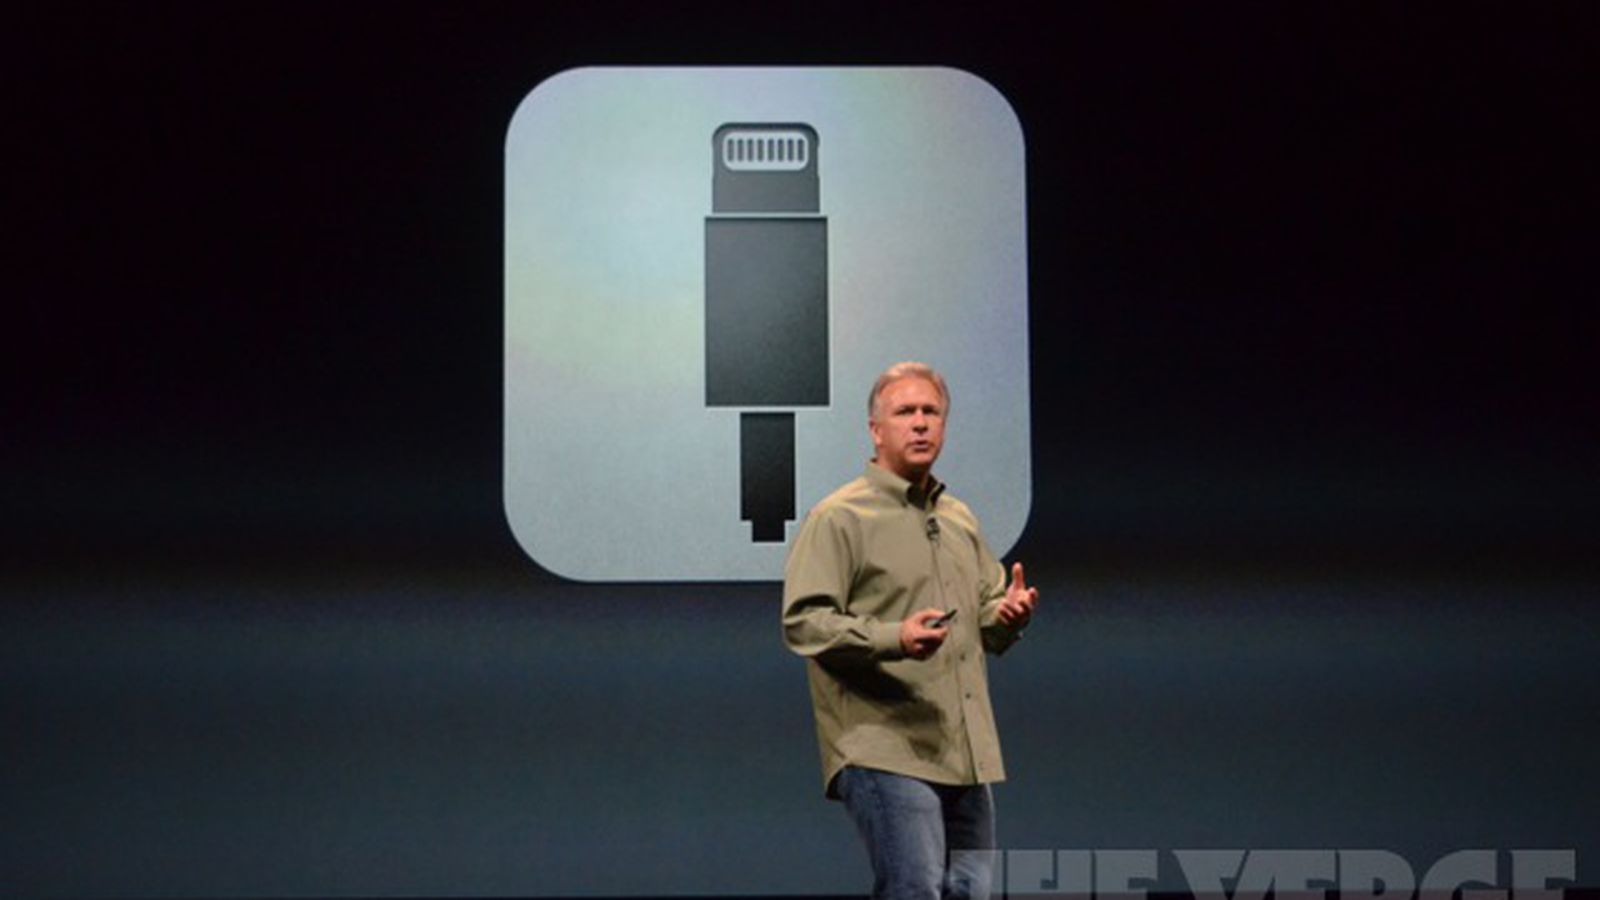 Phil Schiller Sees No Need For NFC Or Wireless Charging